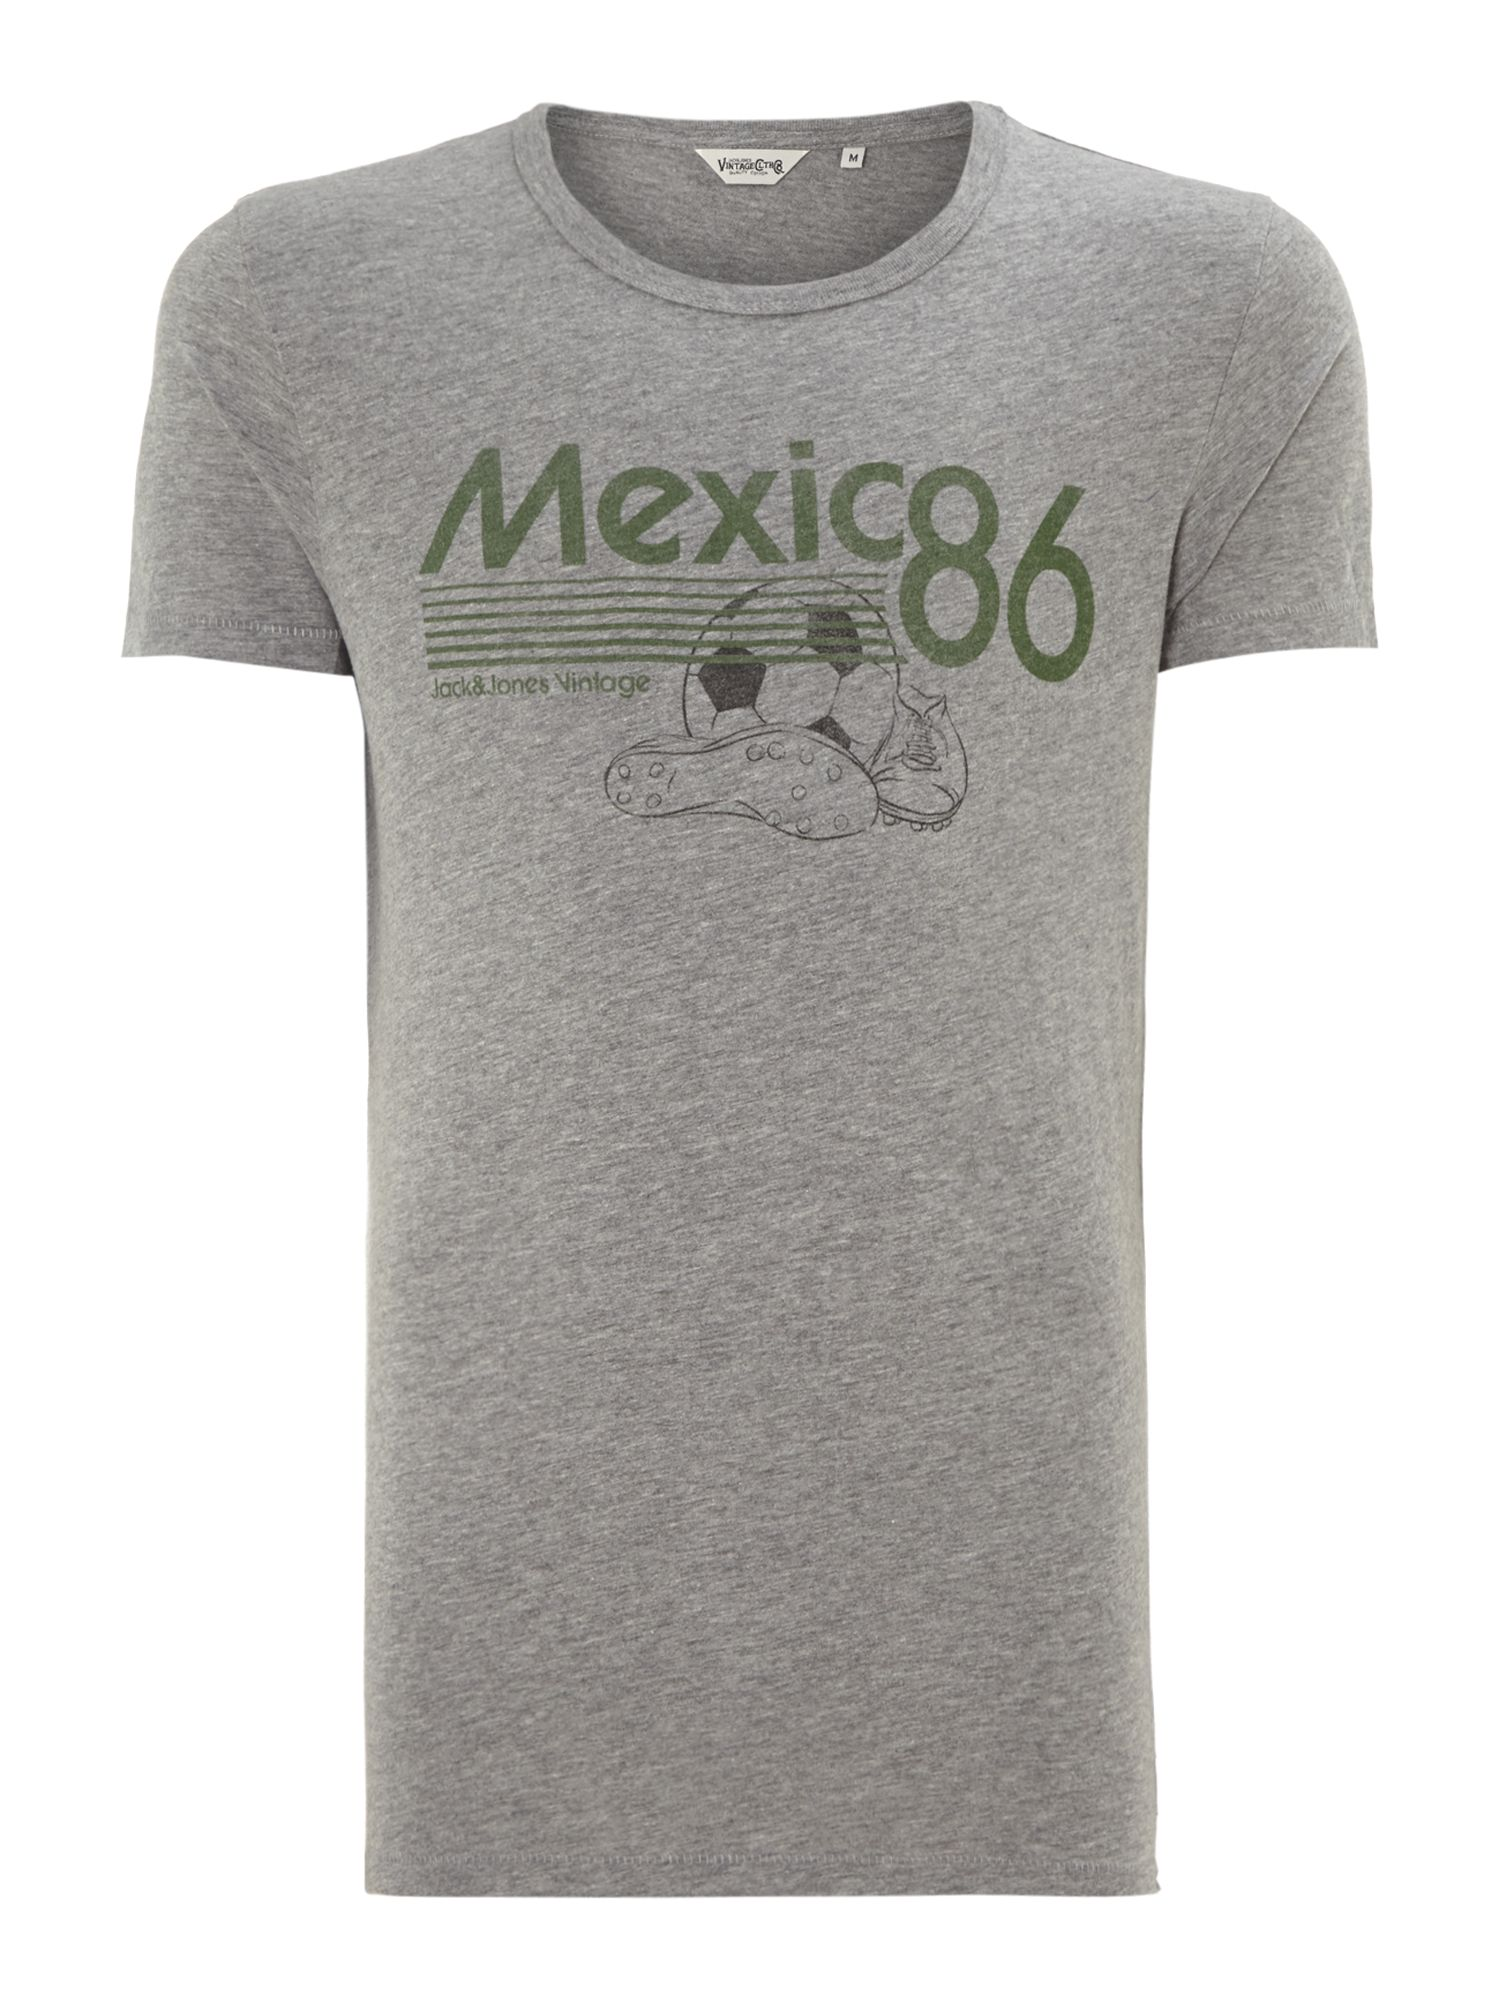 Retro football t-shirt